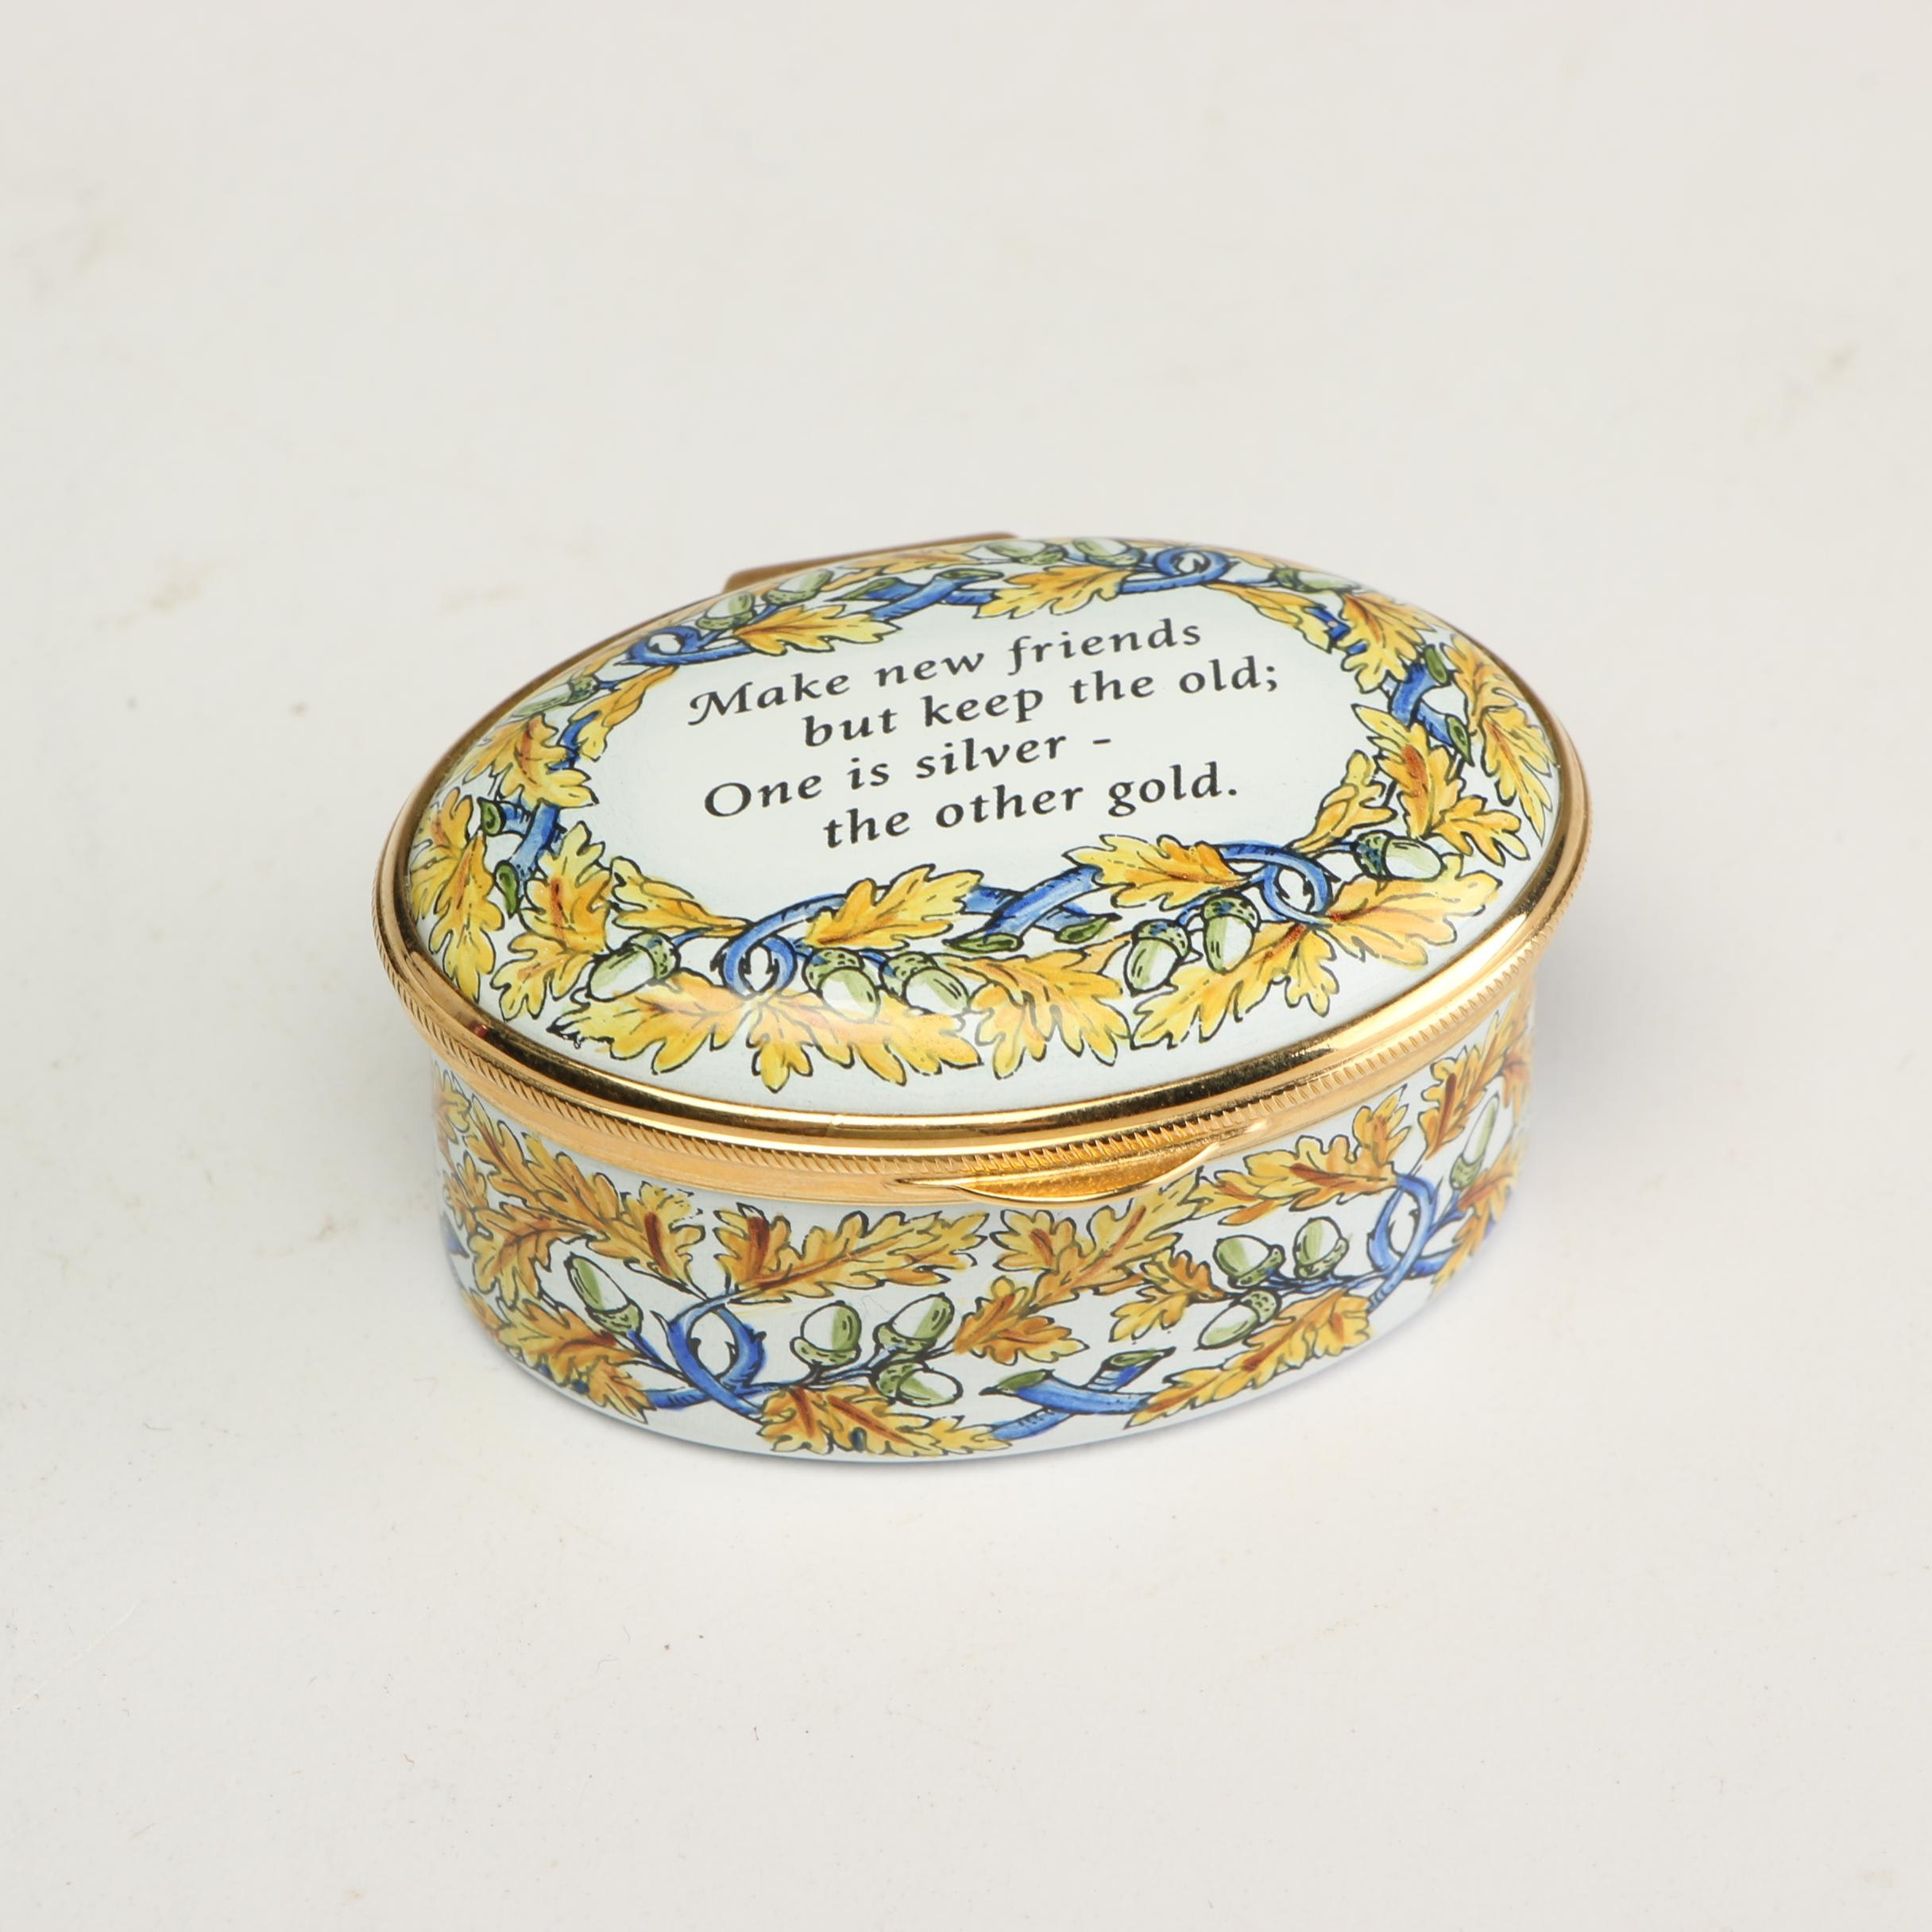 Staffordshire Enamels Oval Trinket Box, Late 20th Century